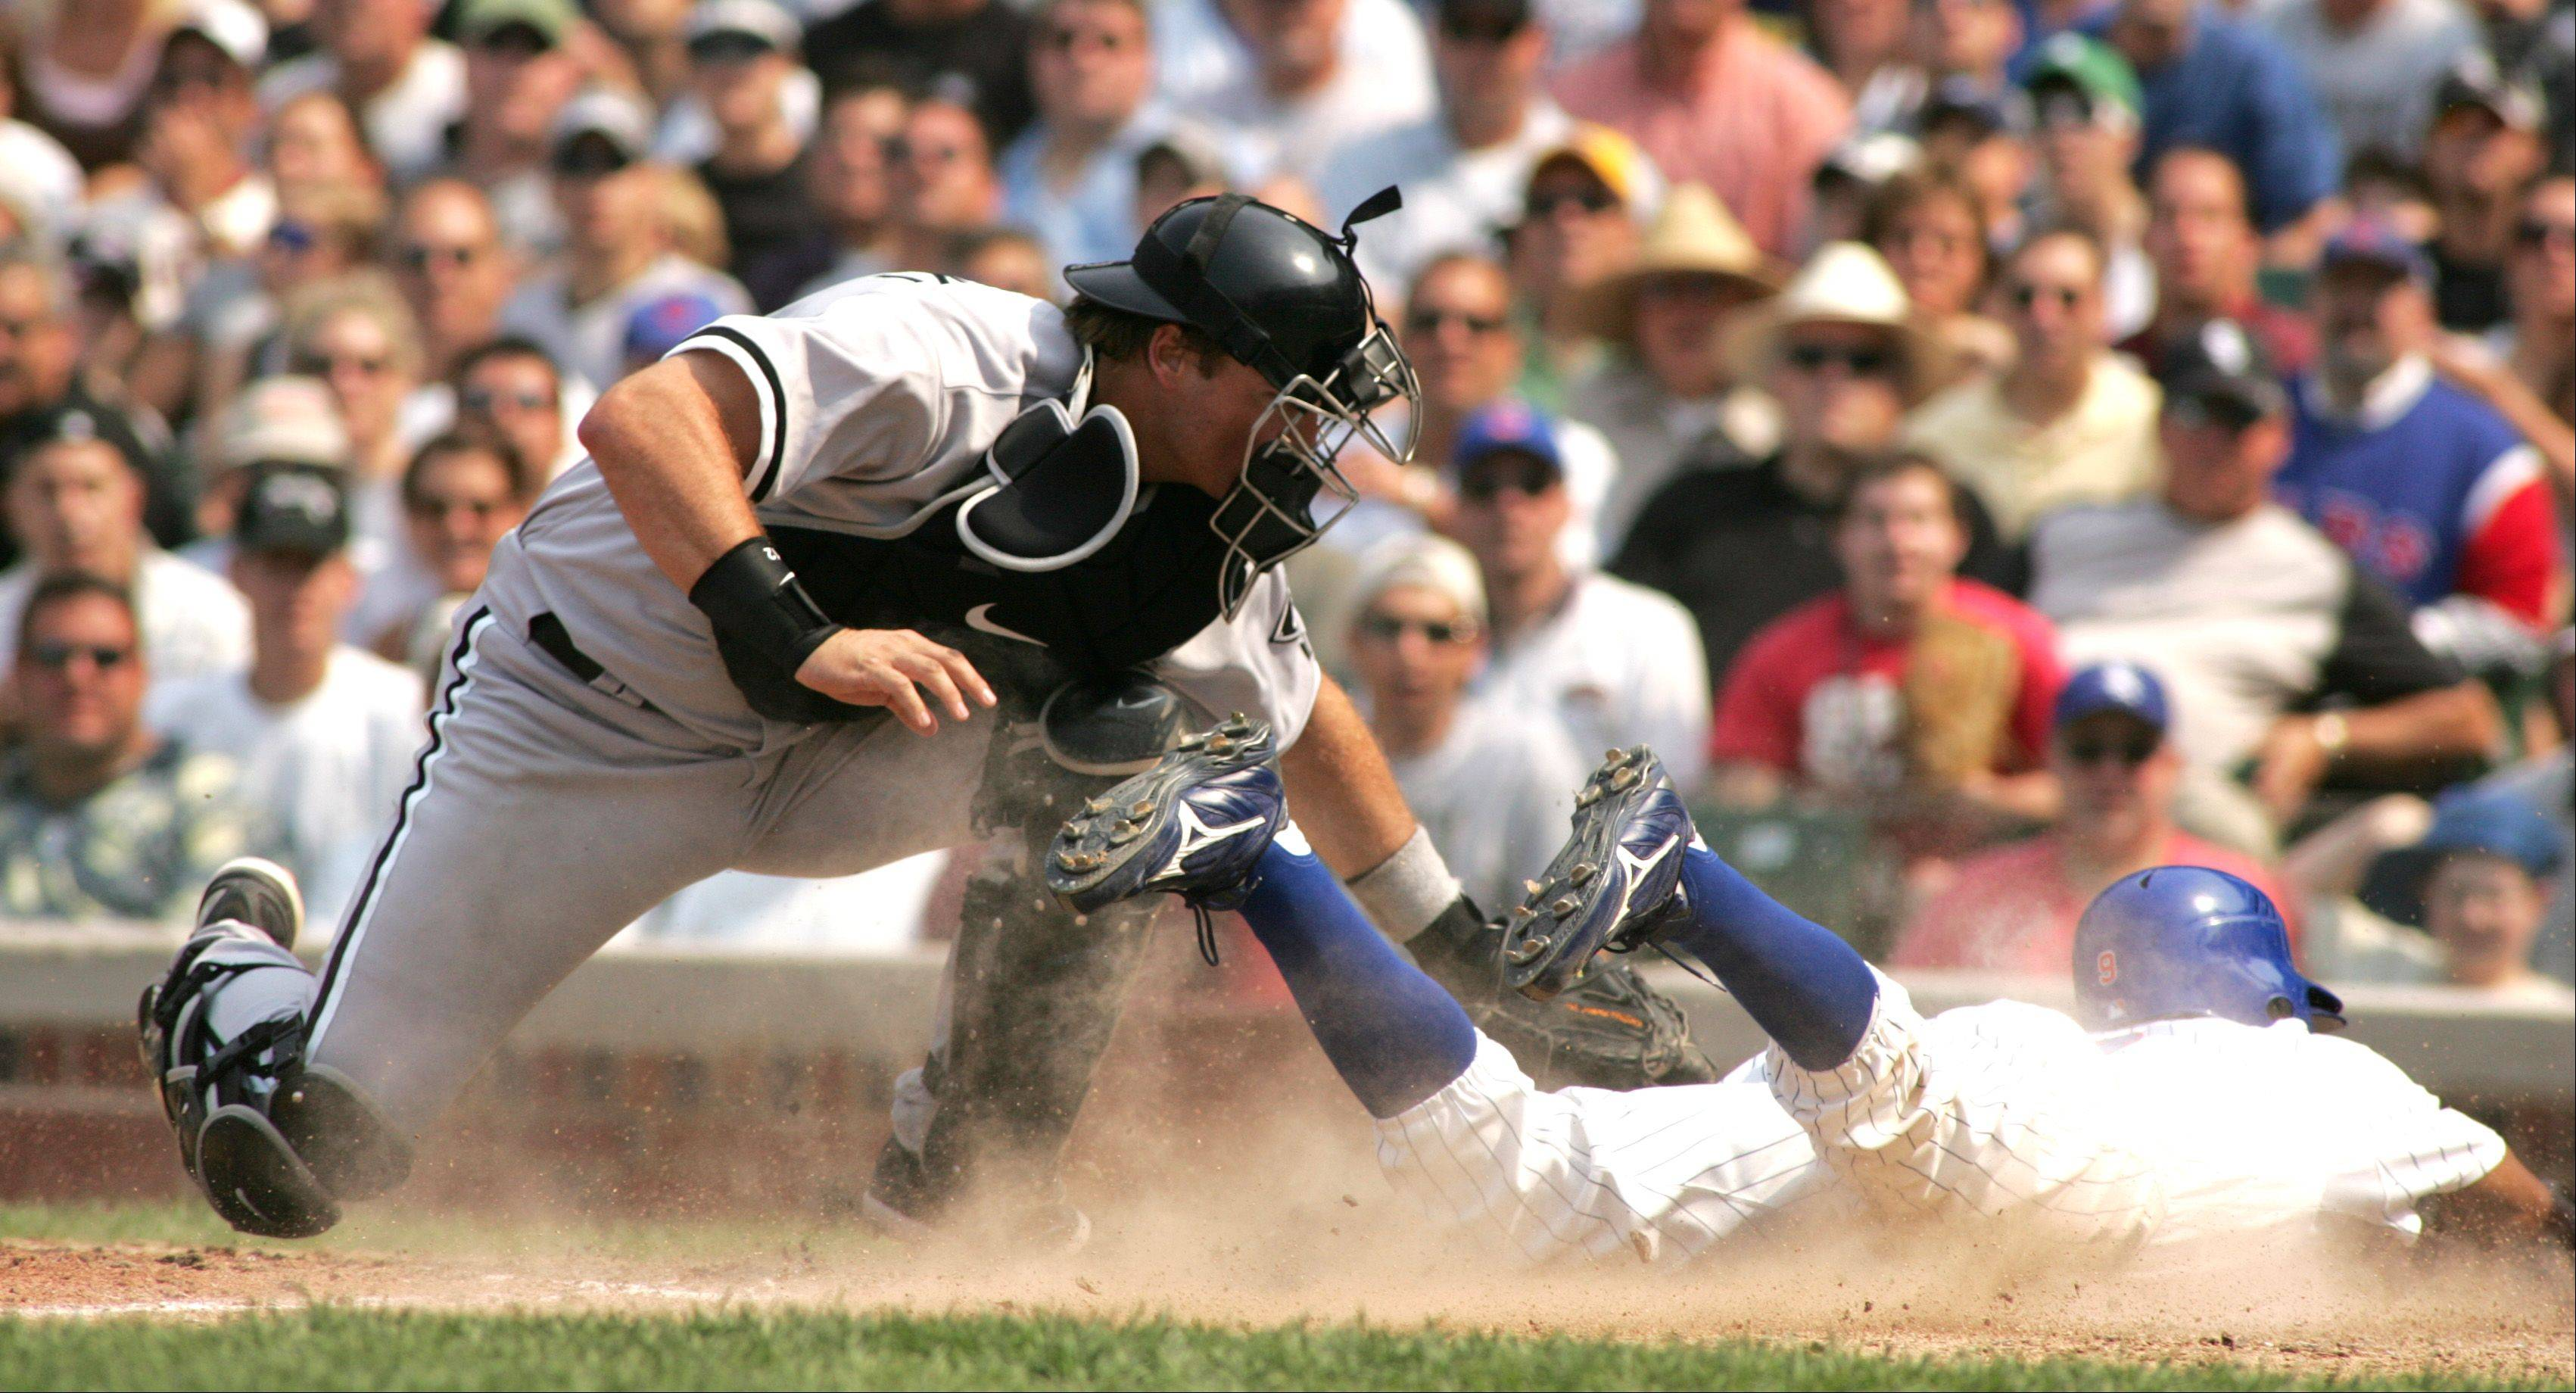 The Sox's A.J Pierzynski tags out Juan Pierre during the 7th inning as the Chicago Cubs battle the Chicago White Sox at Wrigley Field, Friday.